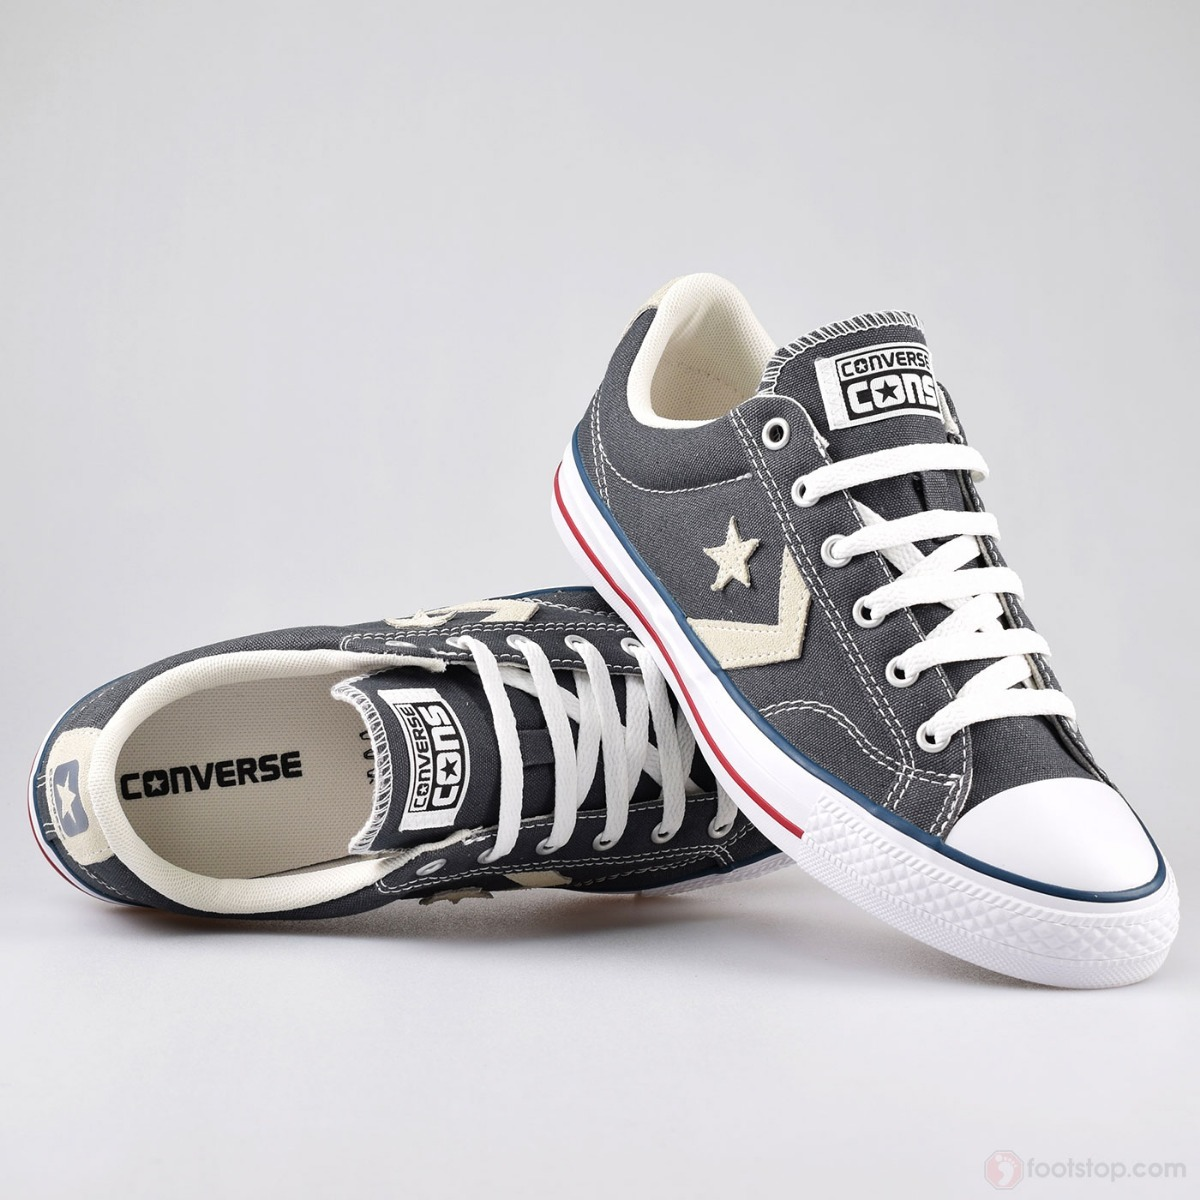 2converse star player mujer